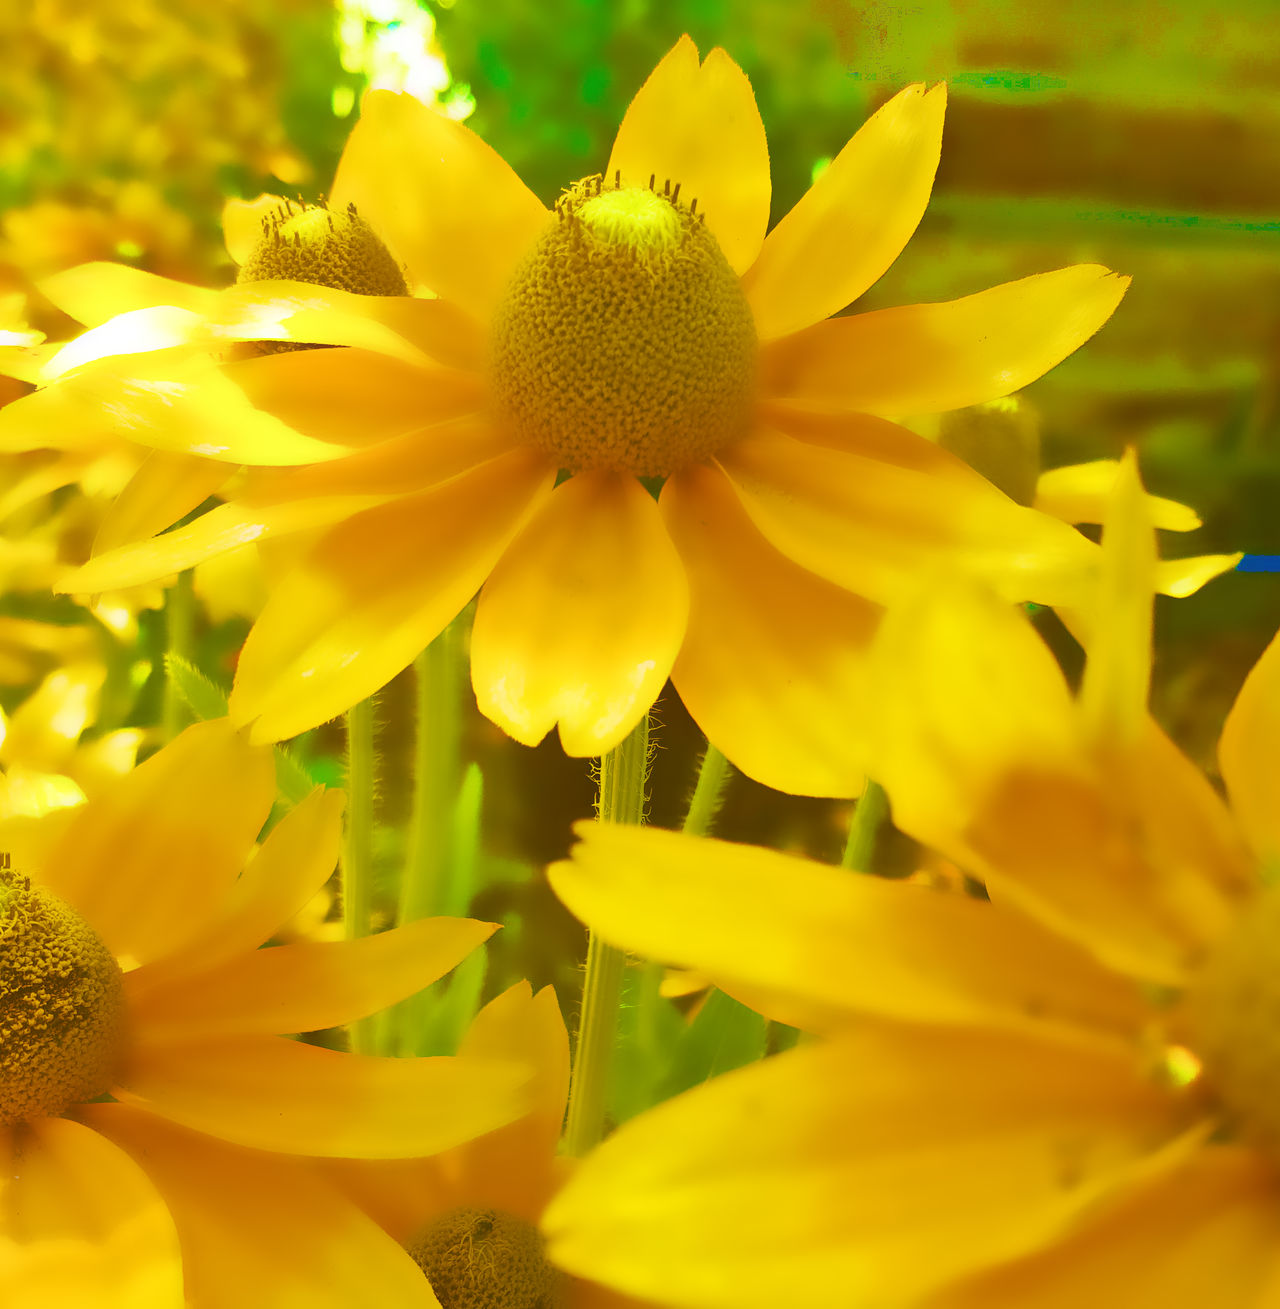 Beautiful Nature Crystal Like Filtered Image Flower Flower Head Outdoors Petal Yellow